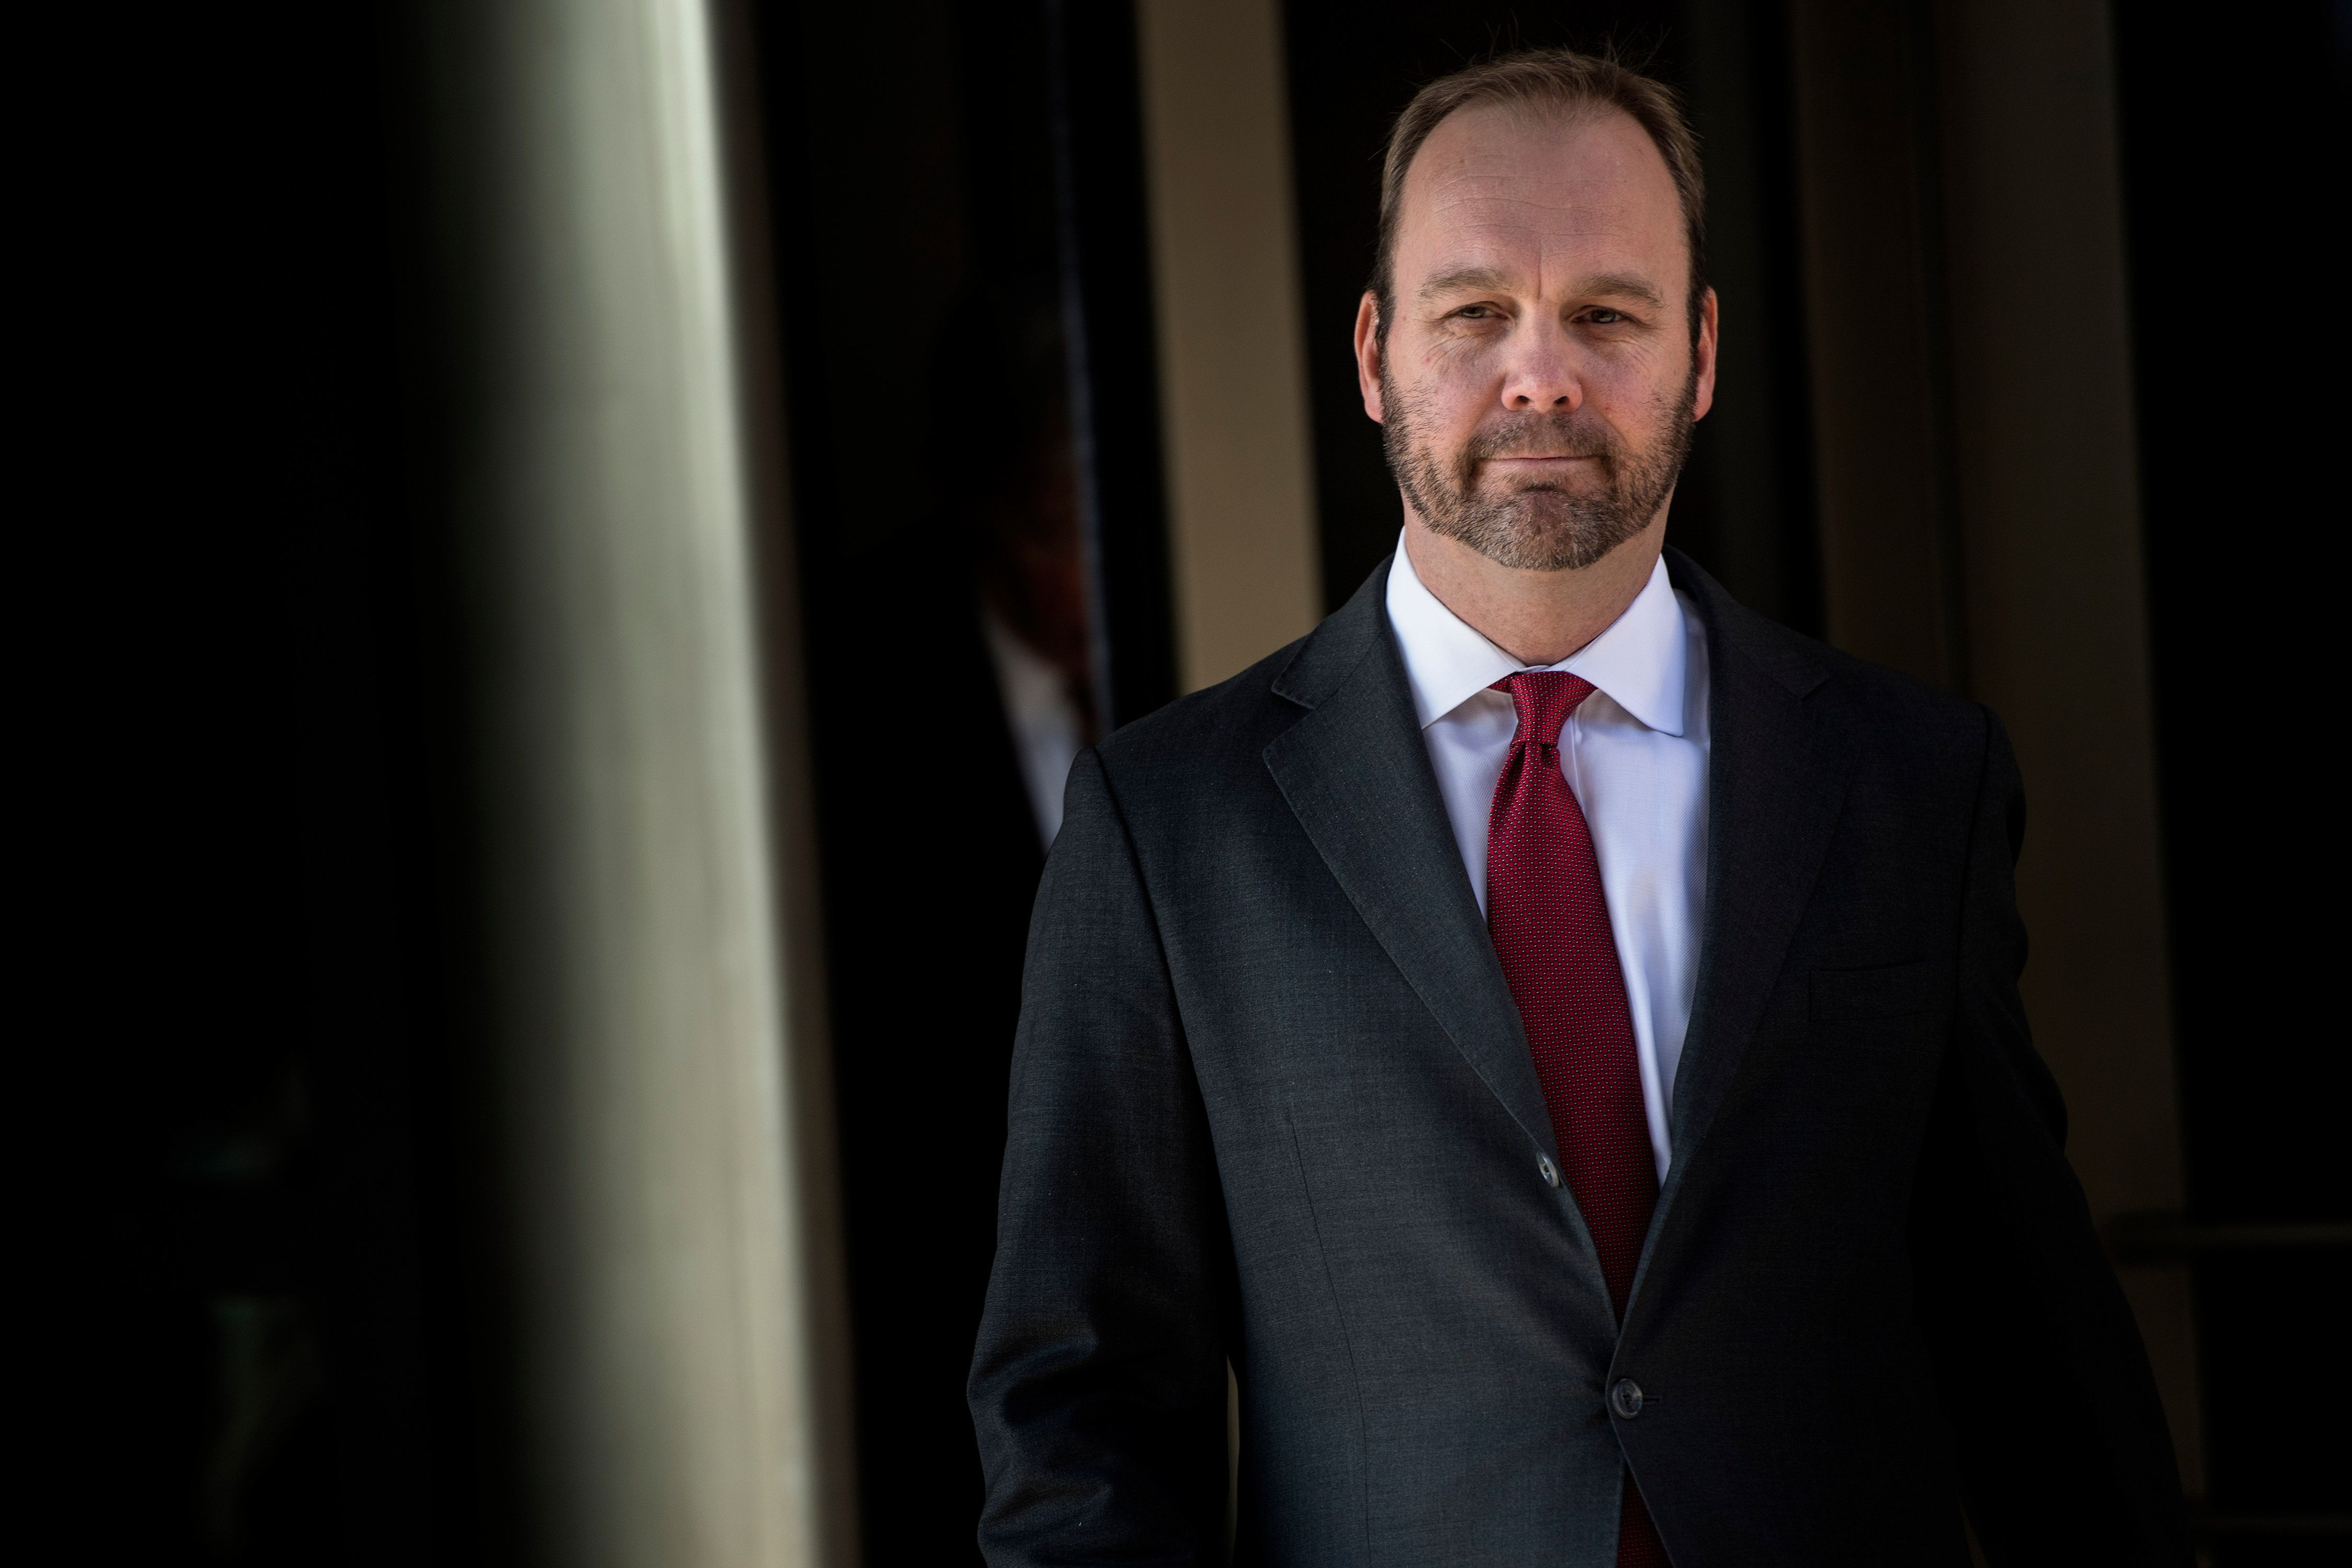 Former Trump campaign official Rick Gates leaves Federal Court on December 11, 2017 in Washington, DC. In October, Trump's one-time campaign chairman Paul Manafort and his deputy Rick Gates were arrested on money laundering and tax-related charges. / AFP PHOTO / Brendan Smialowski        (Photo credit should read BRENDAN SMIALOWSKI/AFP/Getty Images)